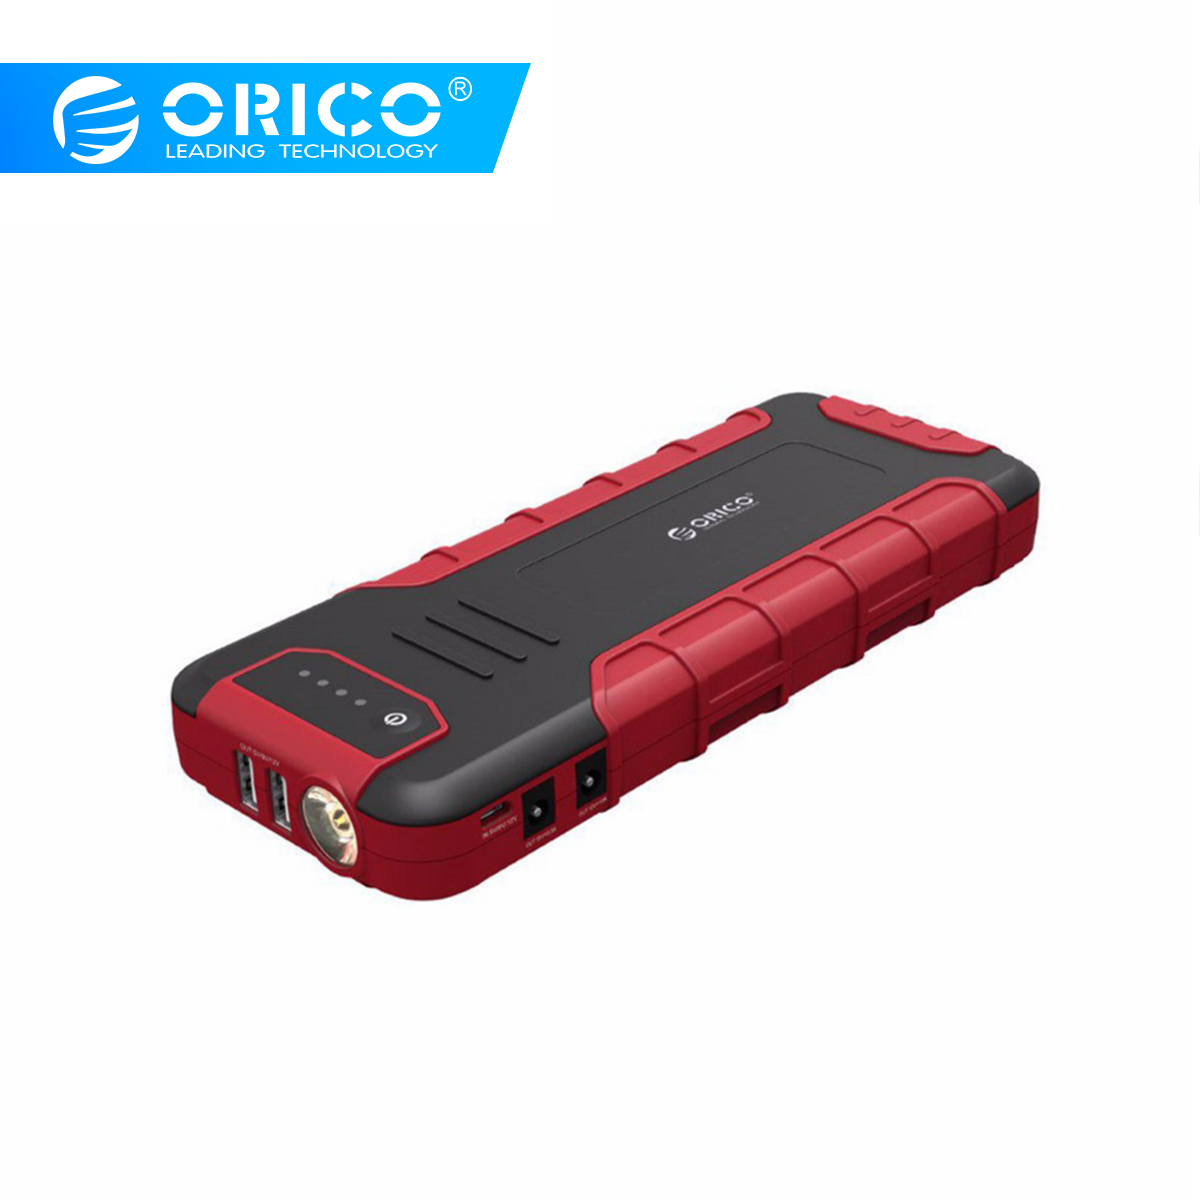 ORICO Multi-function Mini Car Jump Starter Booster Power Bank 18000mAh QC3.0 Battery Charger For 12V 10A 19V 3.5AORICO Multi-function Mini Car Jump Starter Booster Power Bank 18000mAh QC3.0 Battery Charger For 12V 10A 19V 3.5A